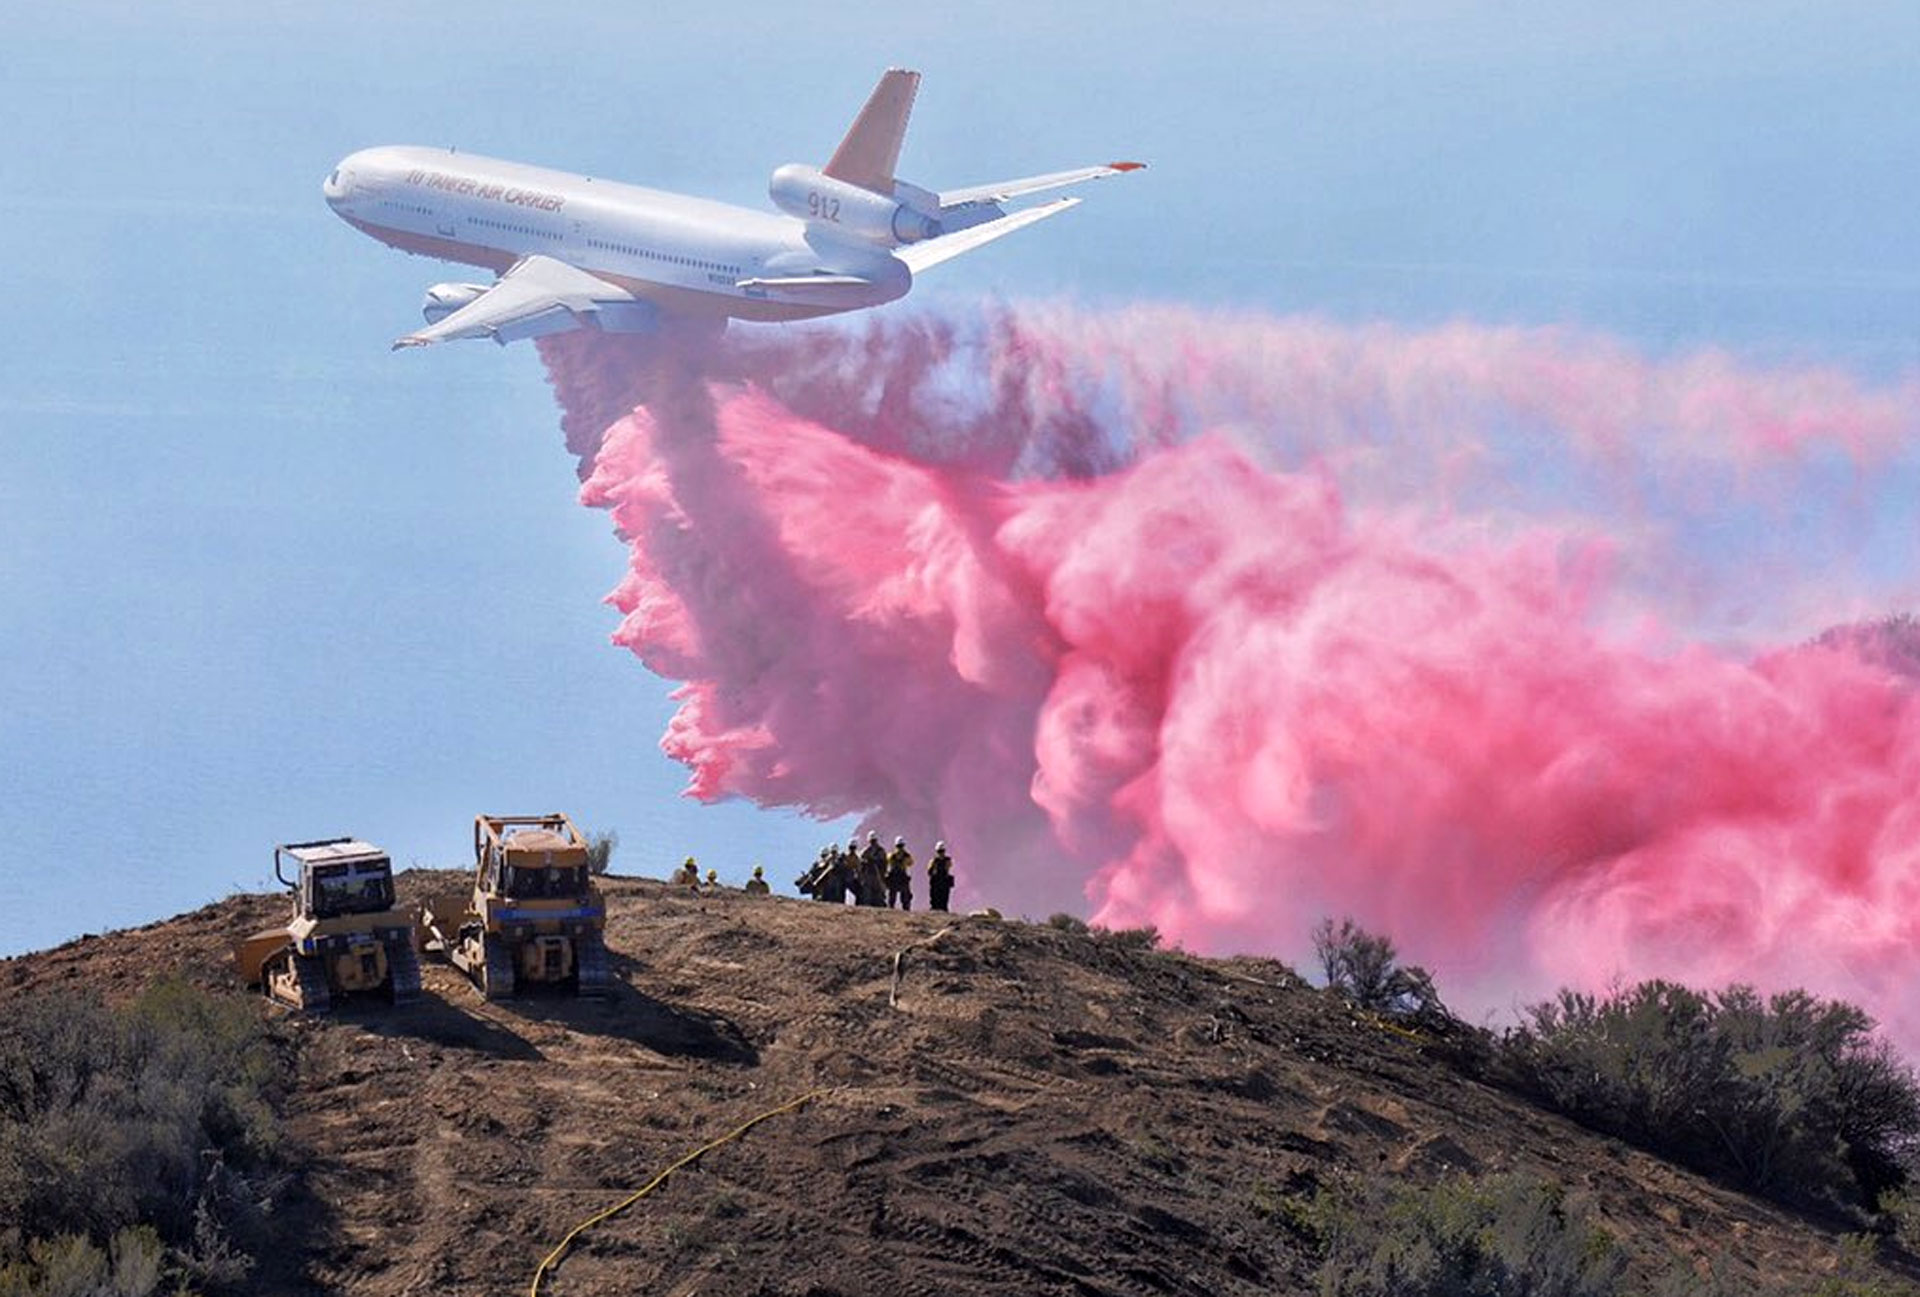 A DC-10 air tanker makes a drop in the foothills above Santa Barbara-Montecito on Thursday, Oct. 29, 2015.